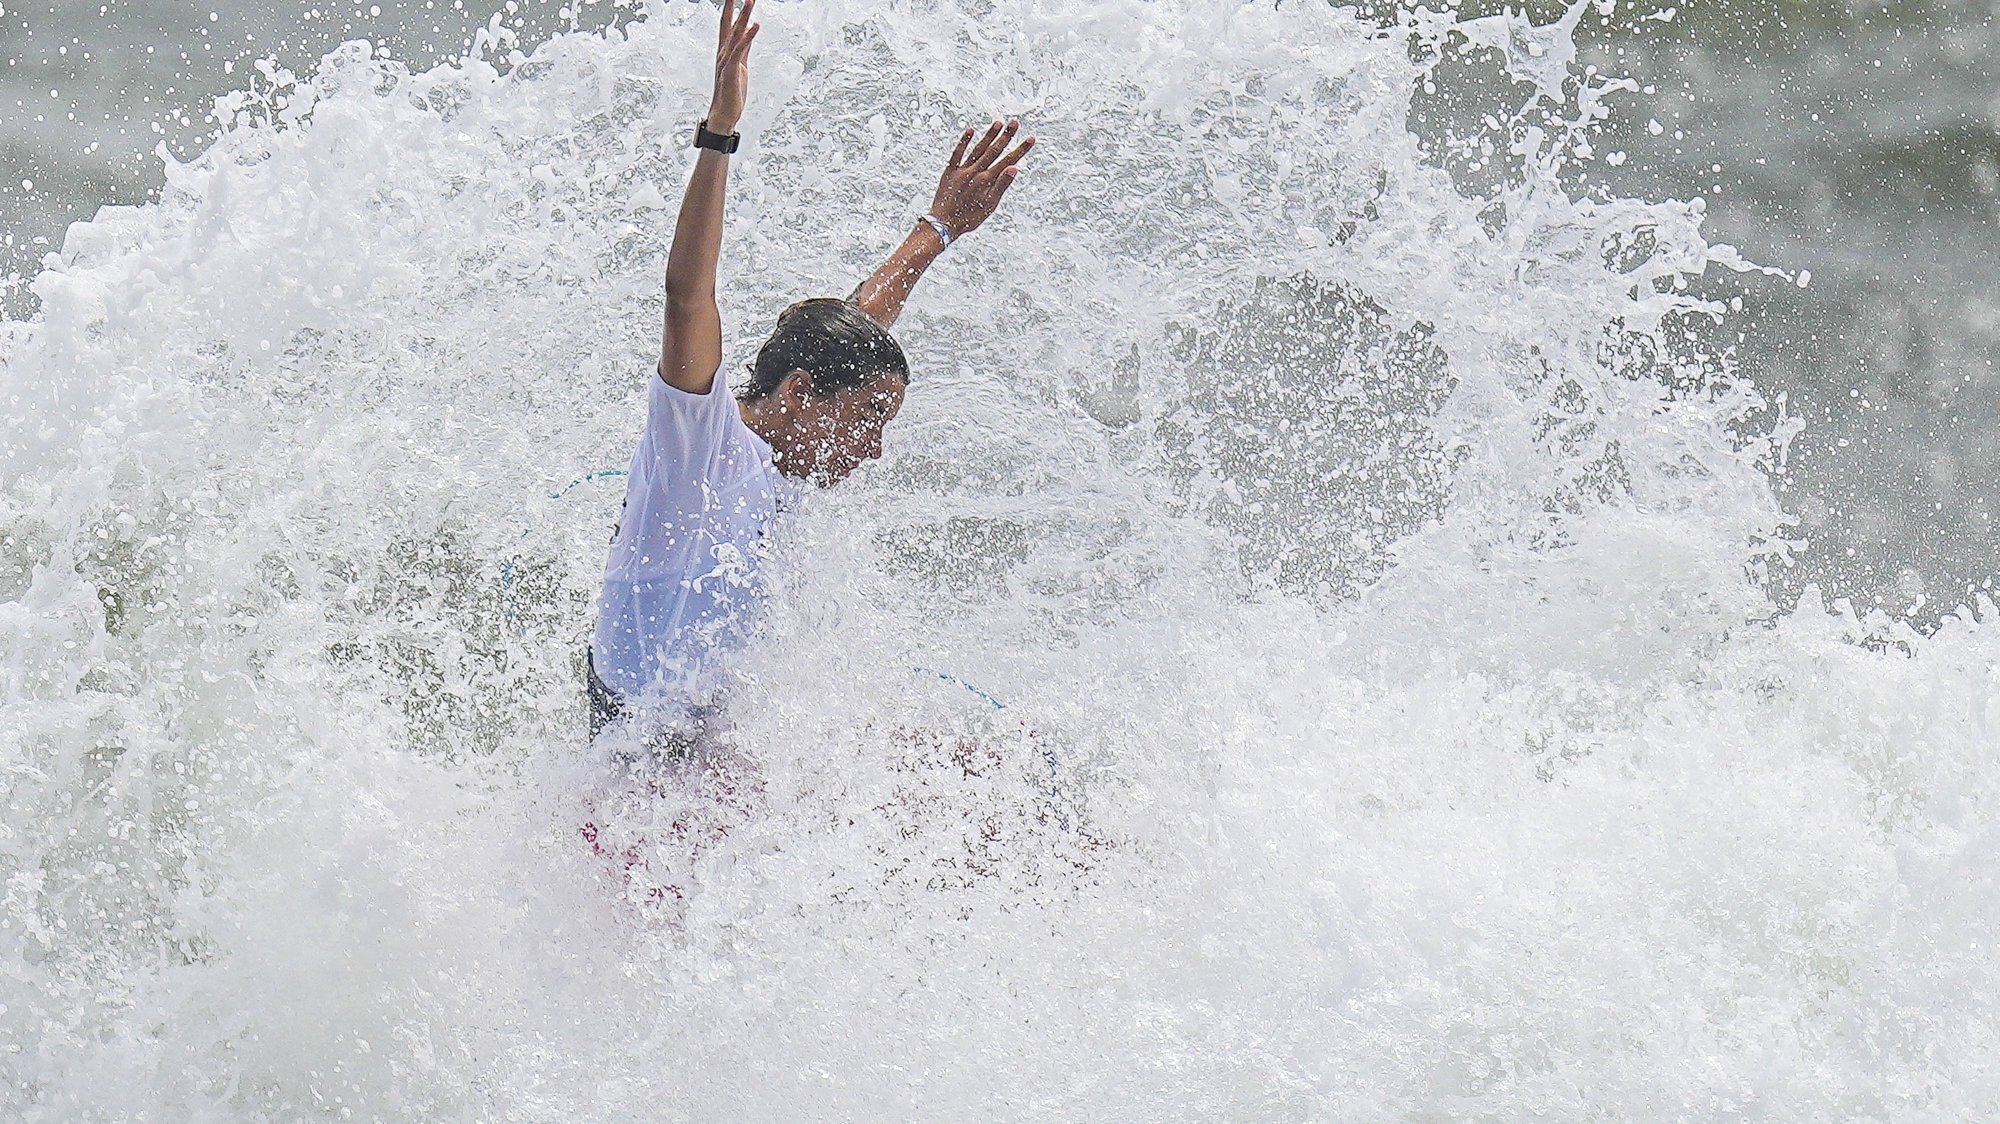 epa09365968 Teresa Bonvalot from Portugal surfs during the Women's Round 3 of the Surfing events of the Tokyo 2020 Olympic Games at the Tsurigasaki Surfing? Beach in Ichinomiya, Japan, 26 July 2021.  EPA/NIC BOTHMA